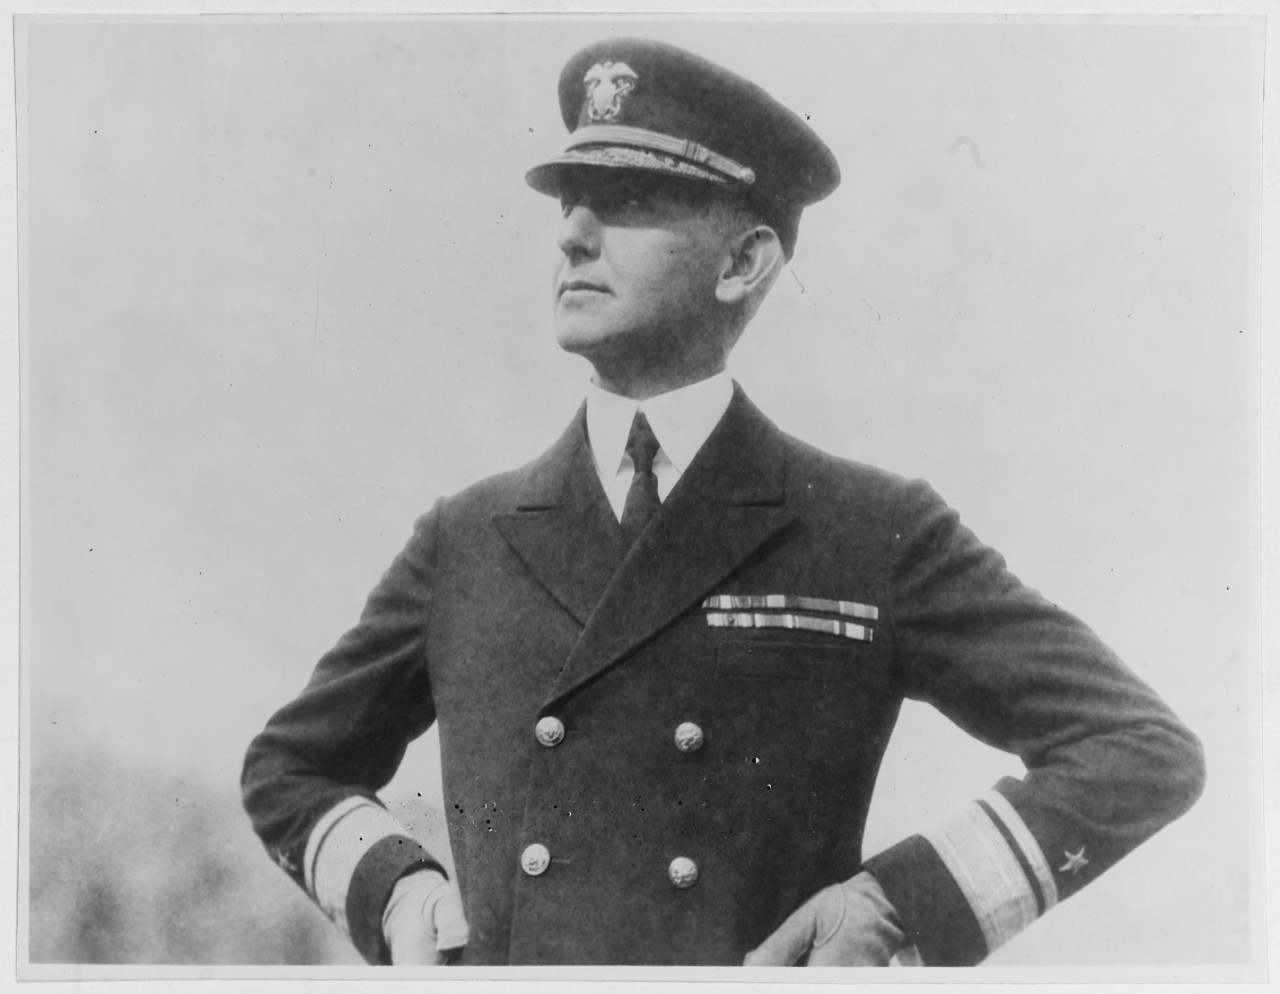 Rear Admiral Claude C. Bloch, USN, 1931.